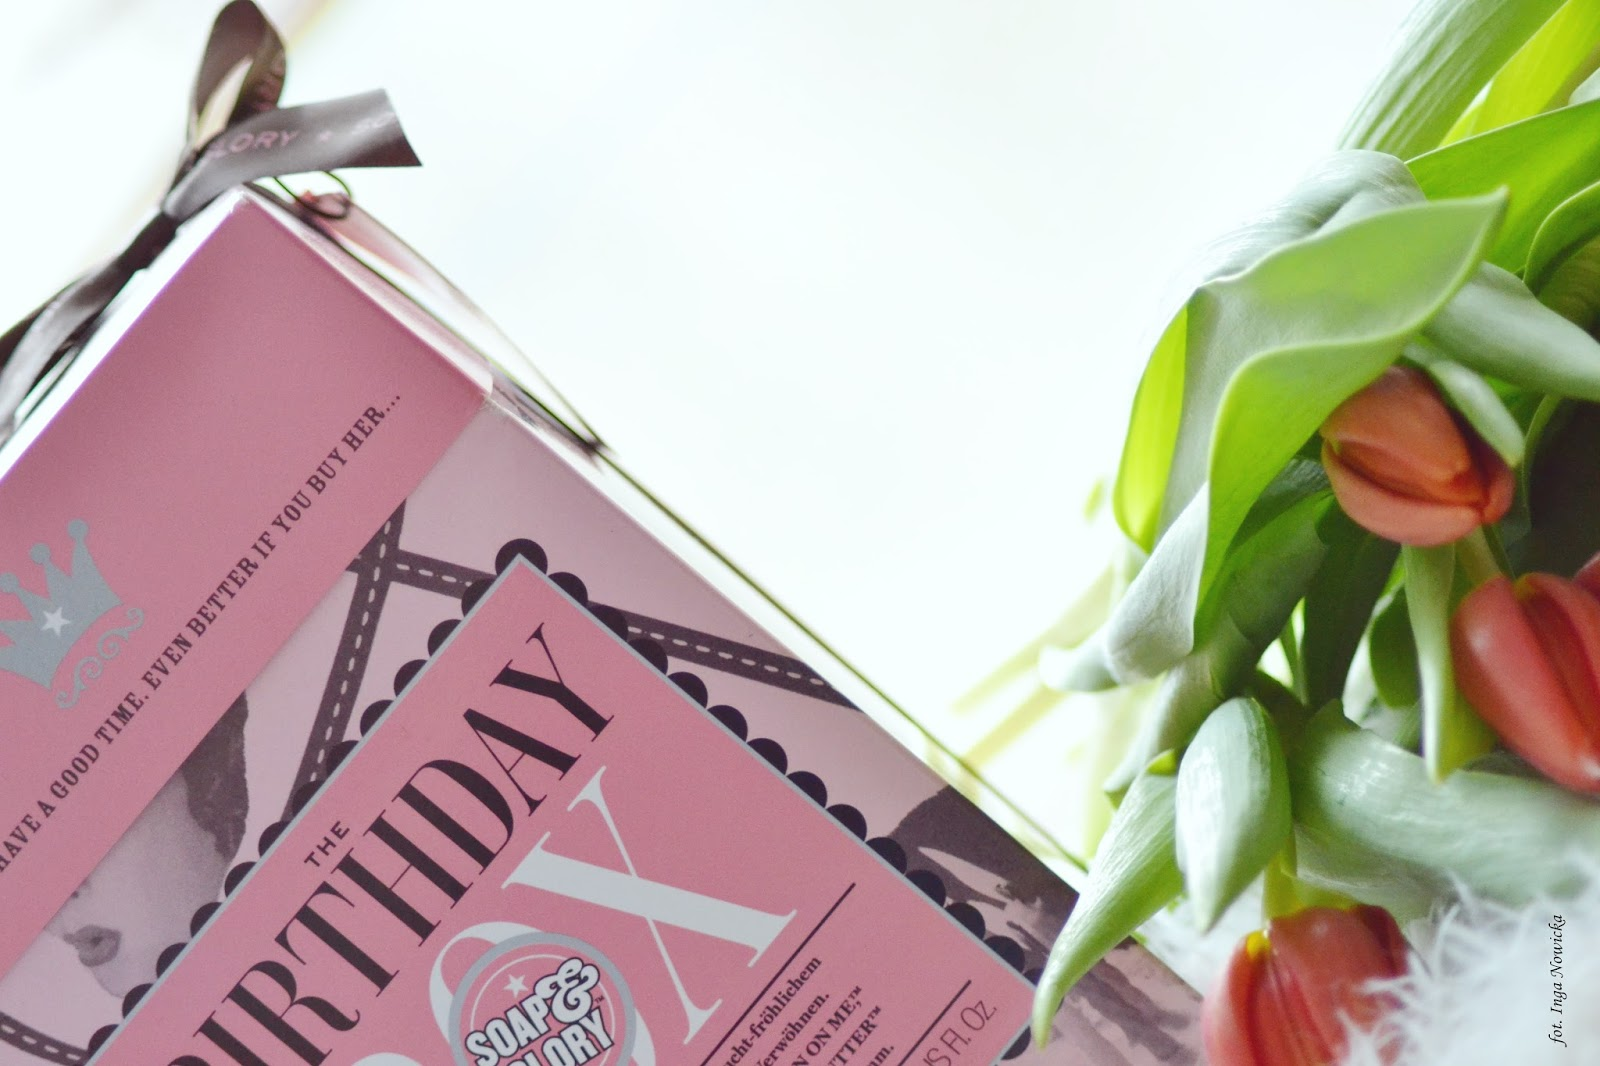 angielska marka soap and glory